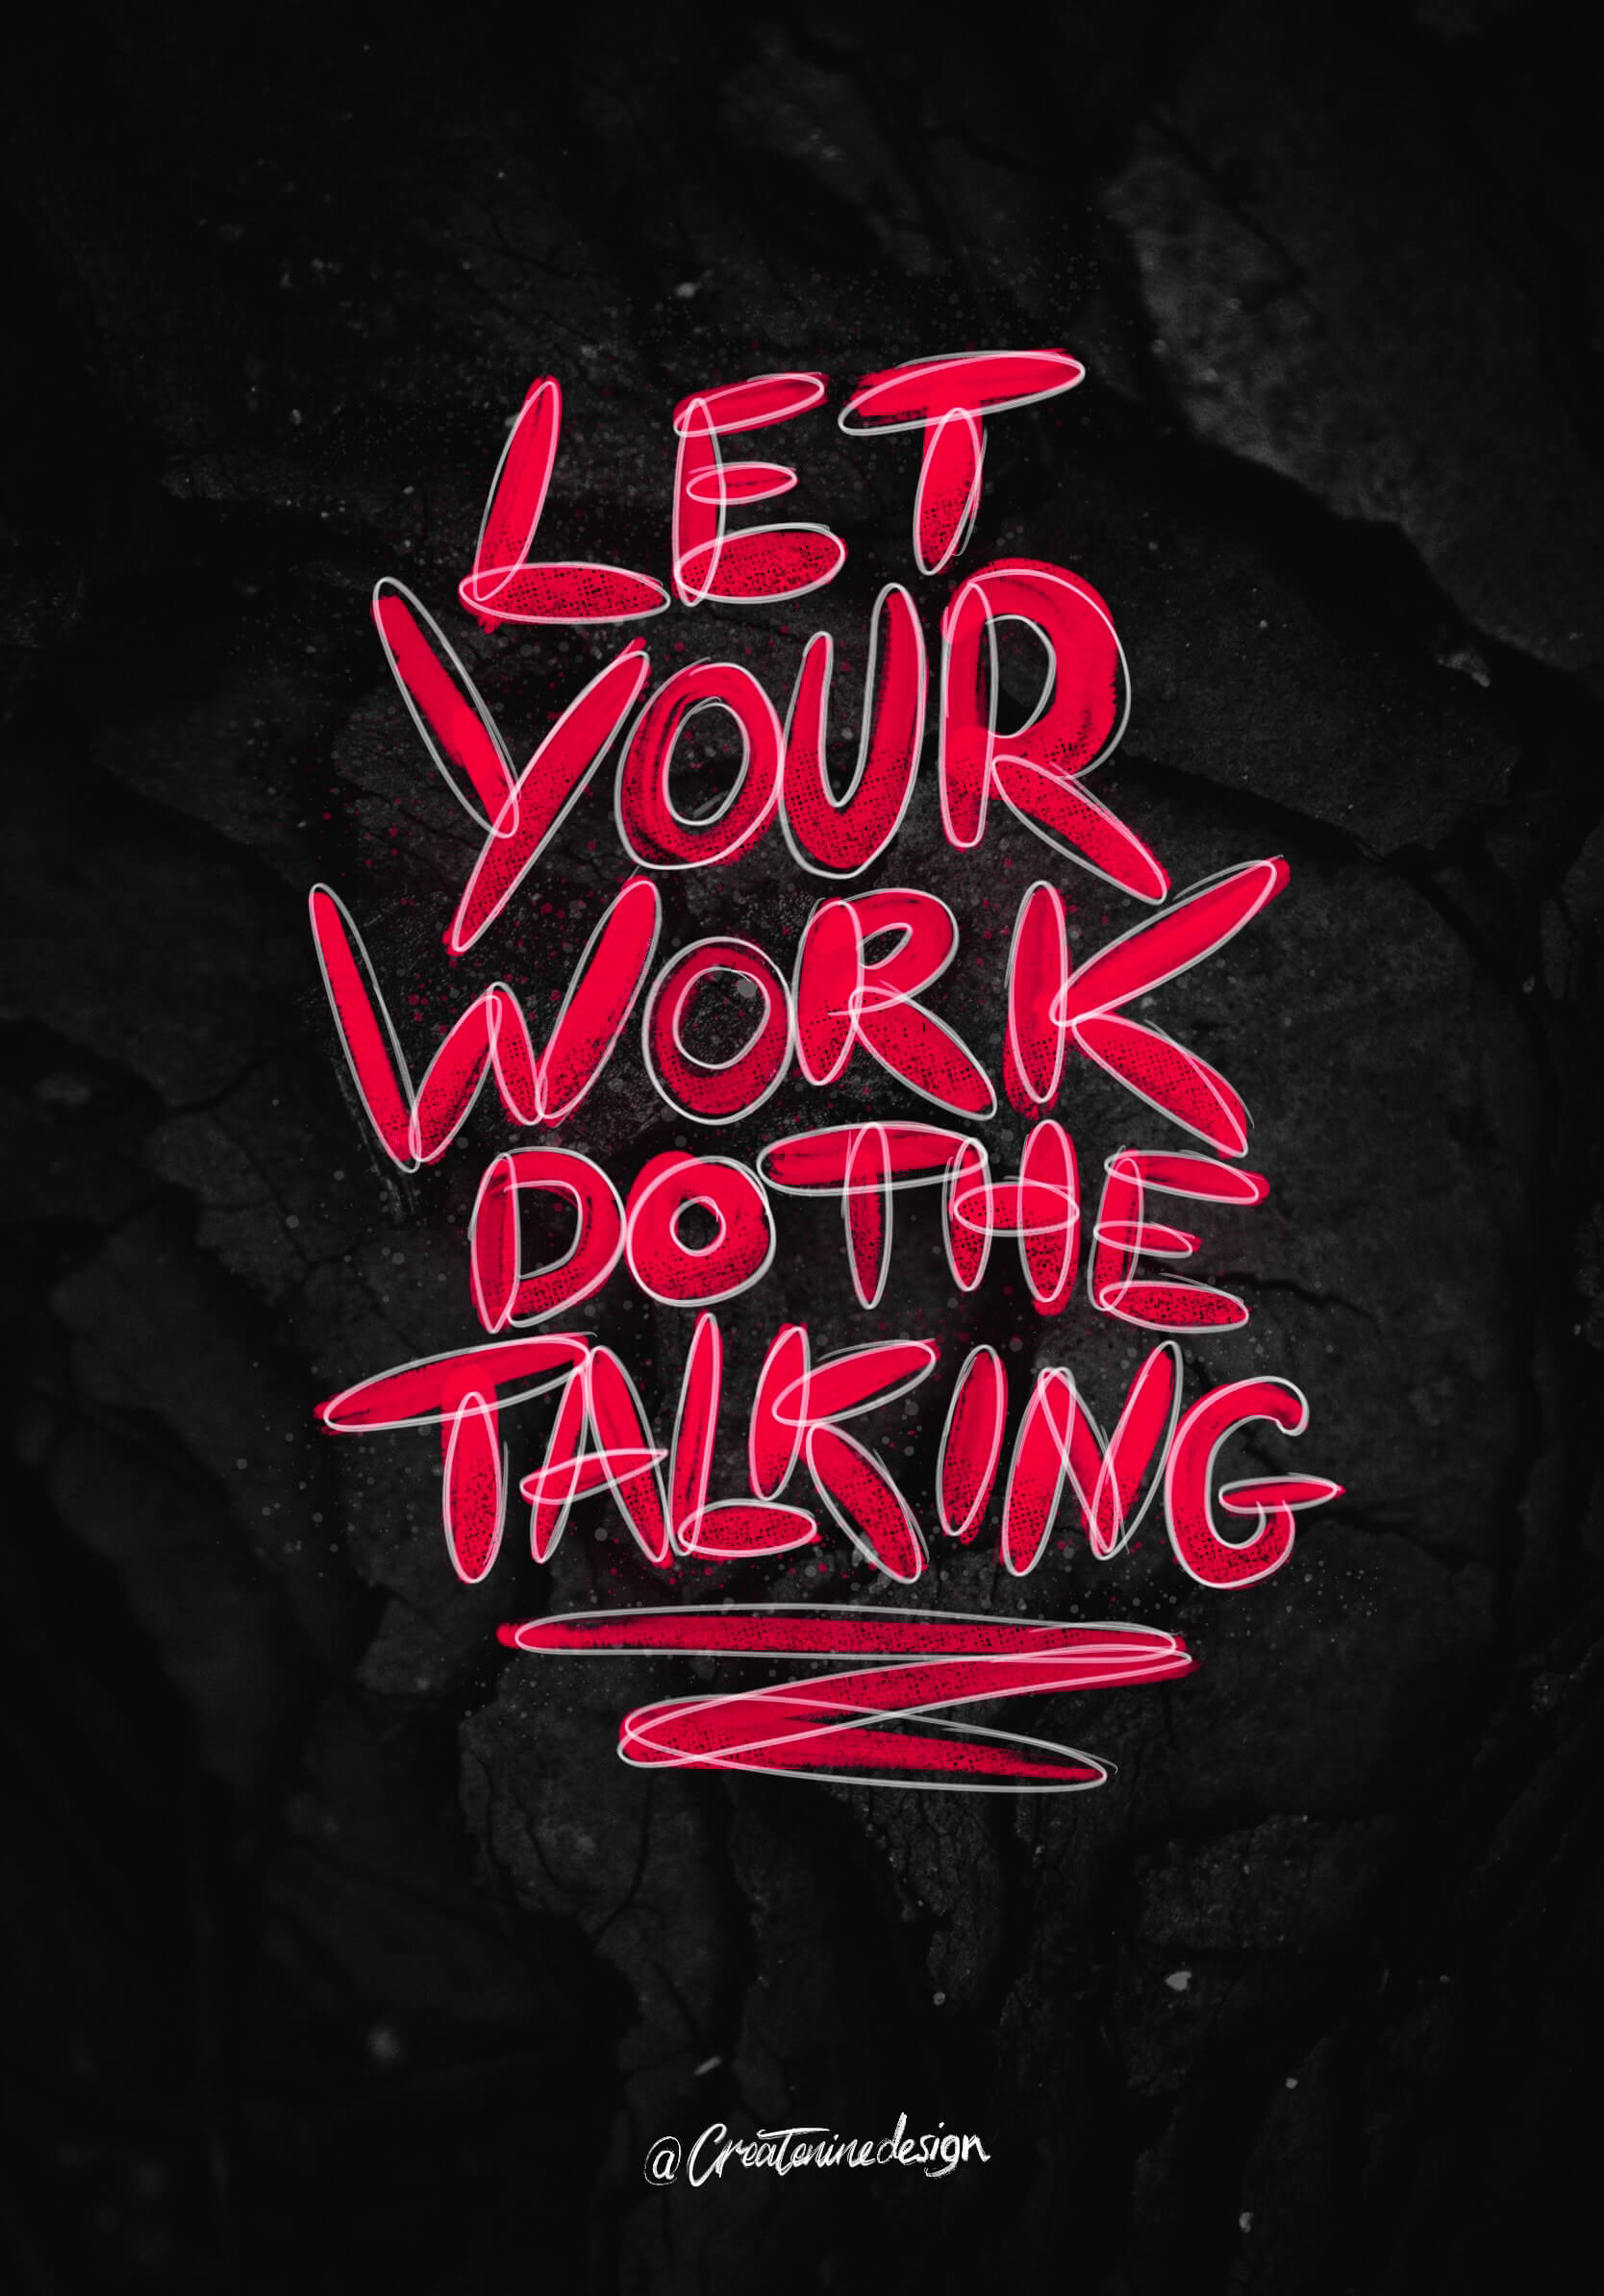 Philip Martland - Let Your Work Do The Talking